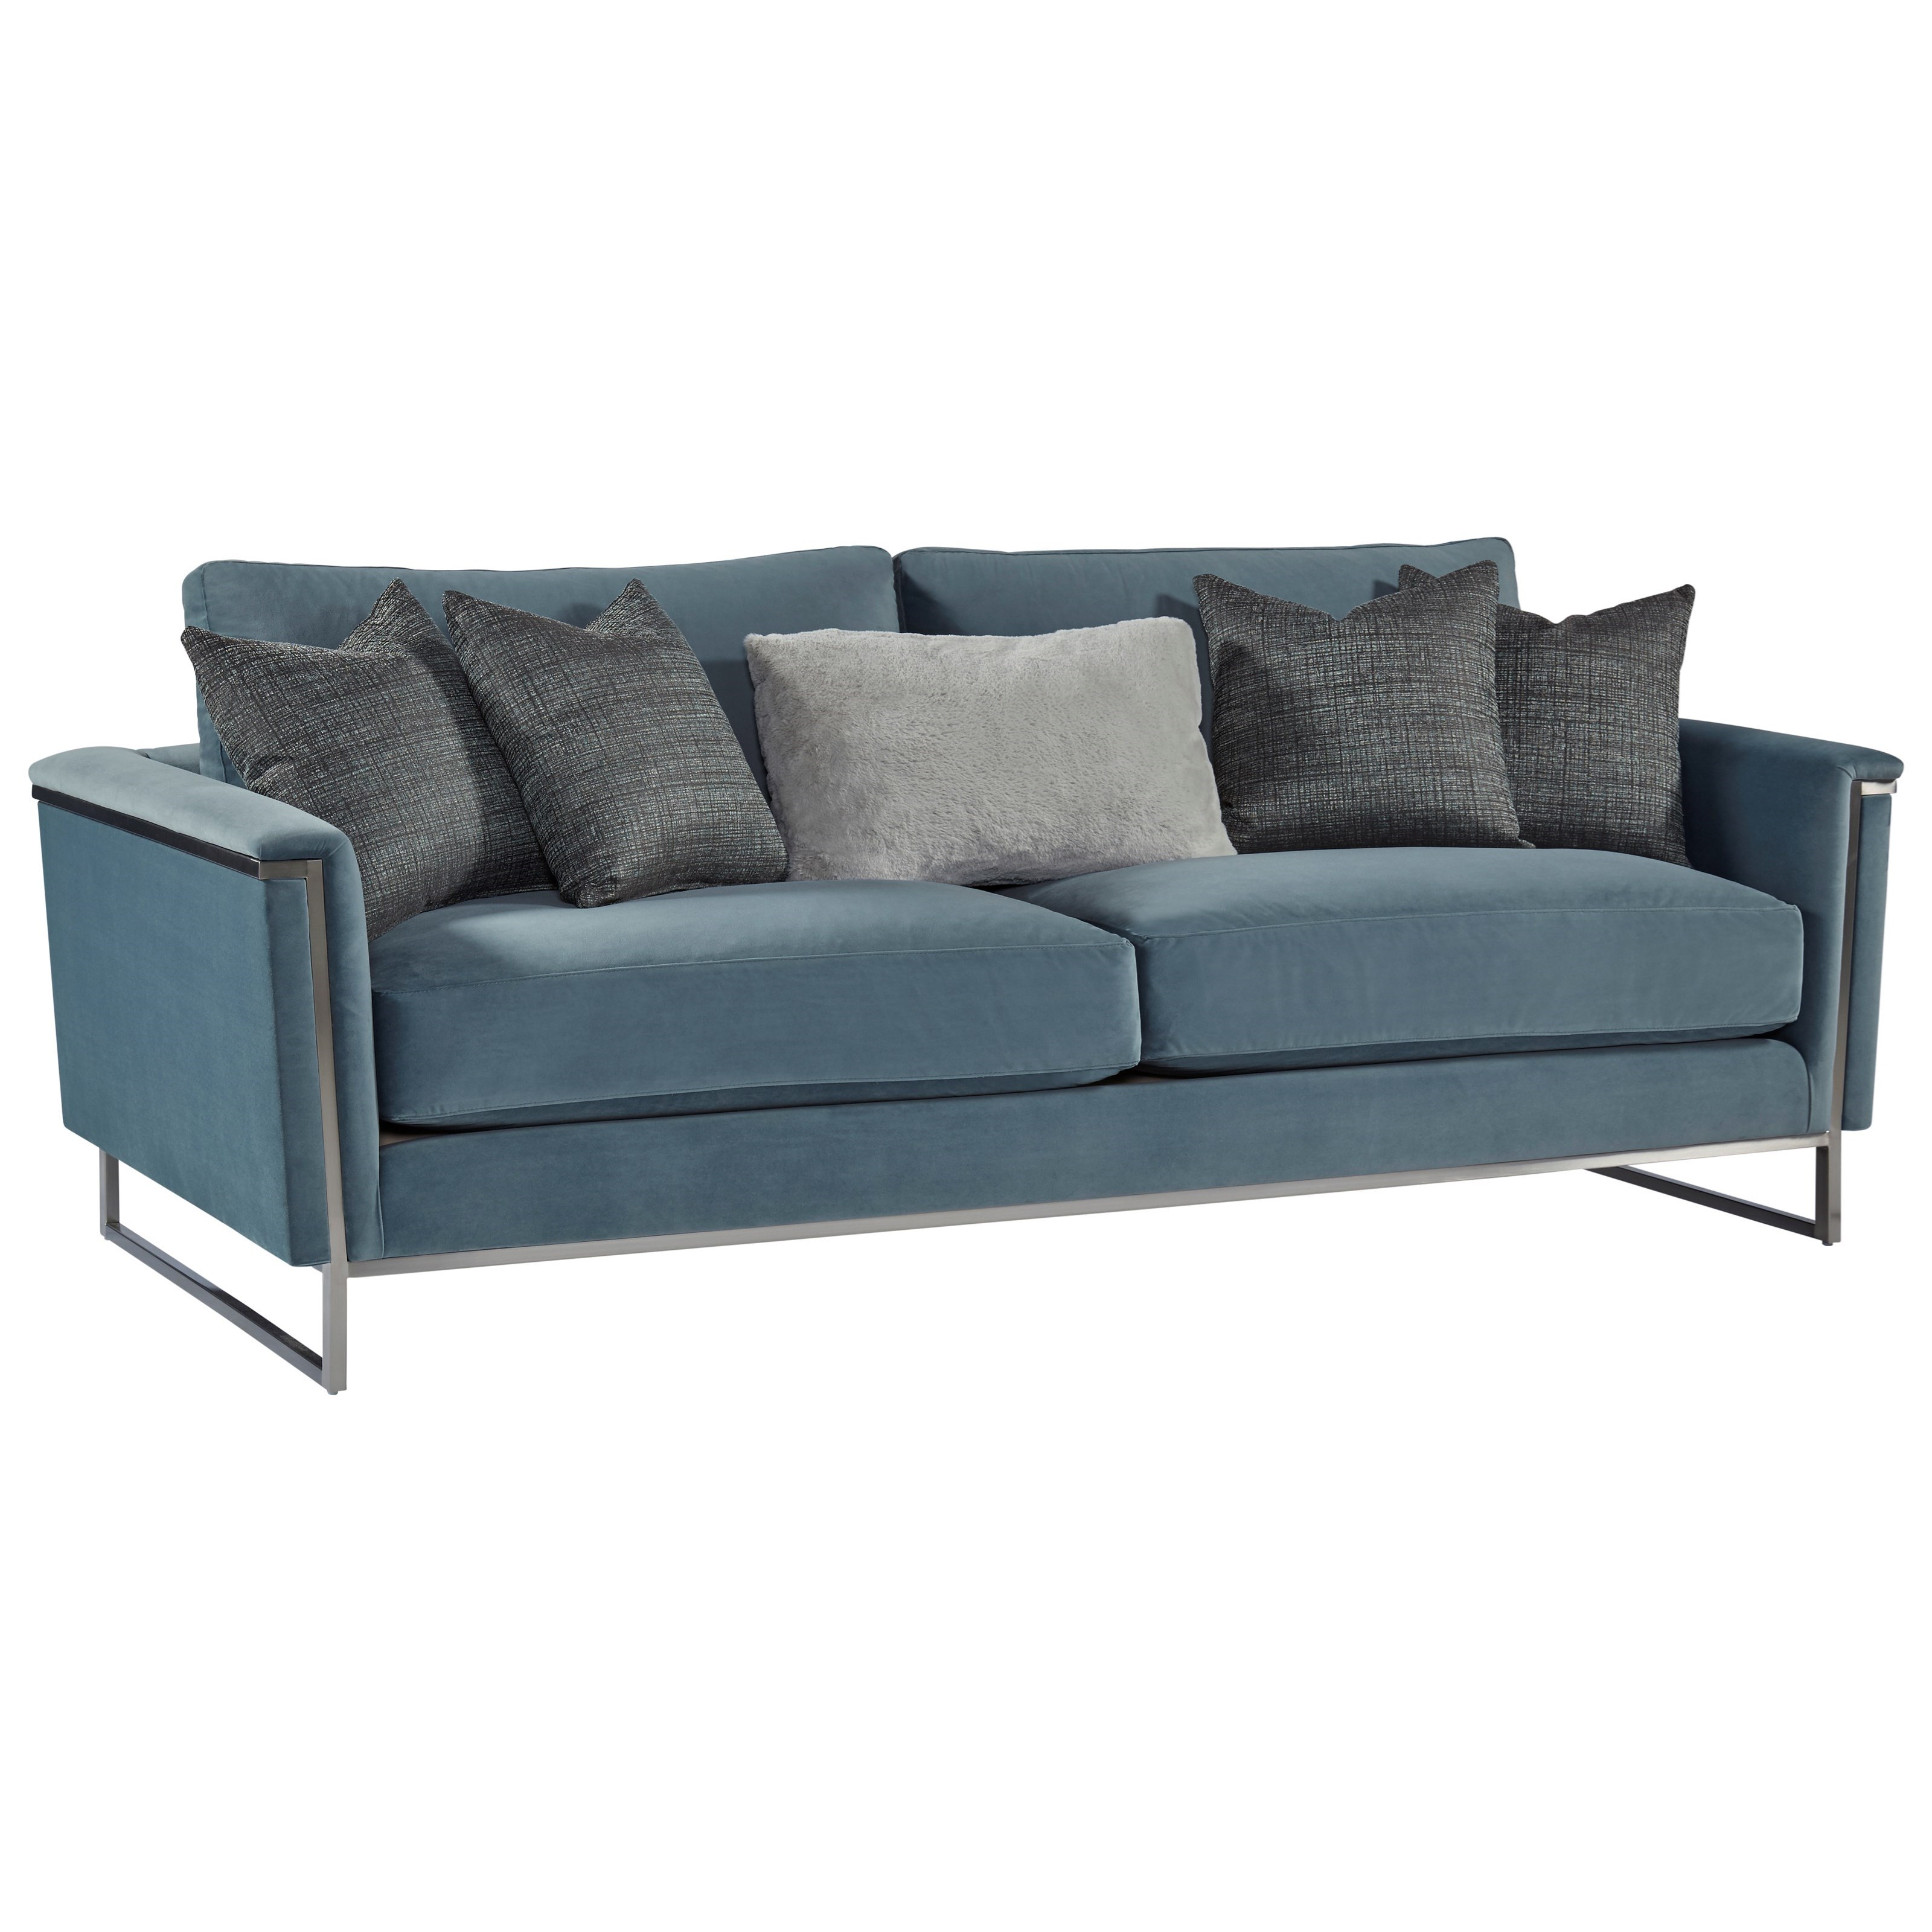 La Scala Upholstery Sofa by A.R.T. Furniture Inc at Hudson's Furniture